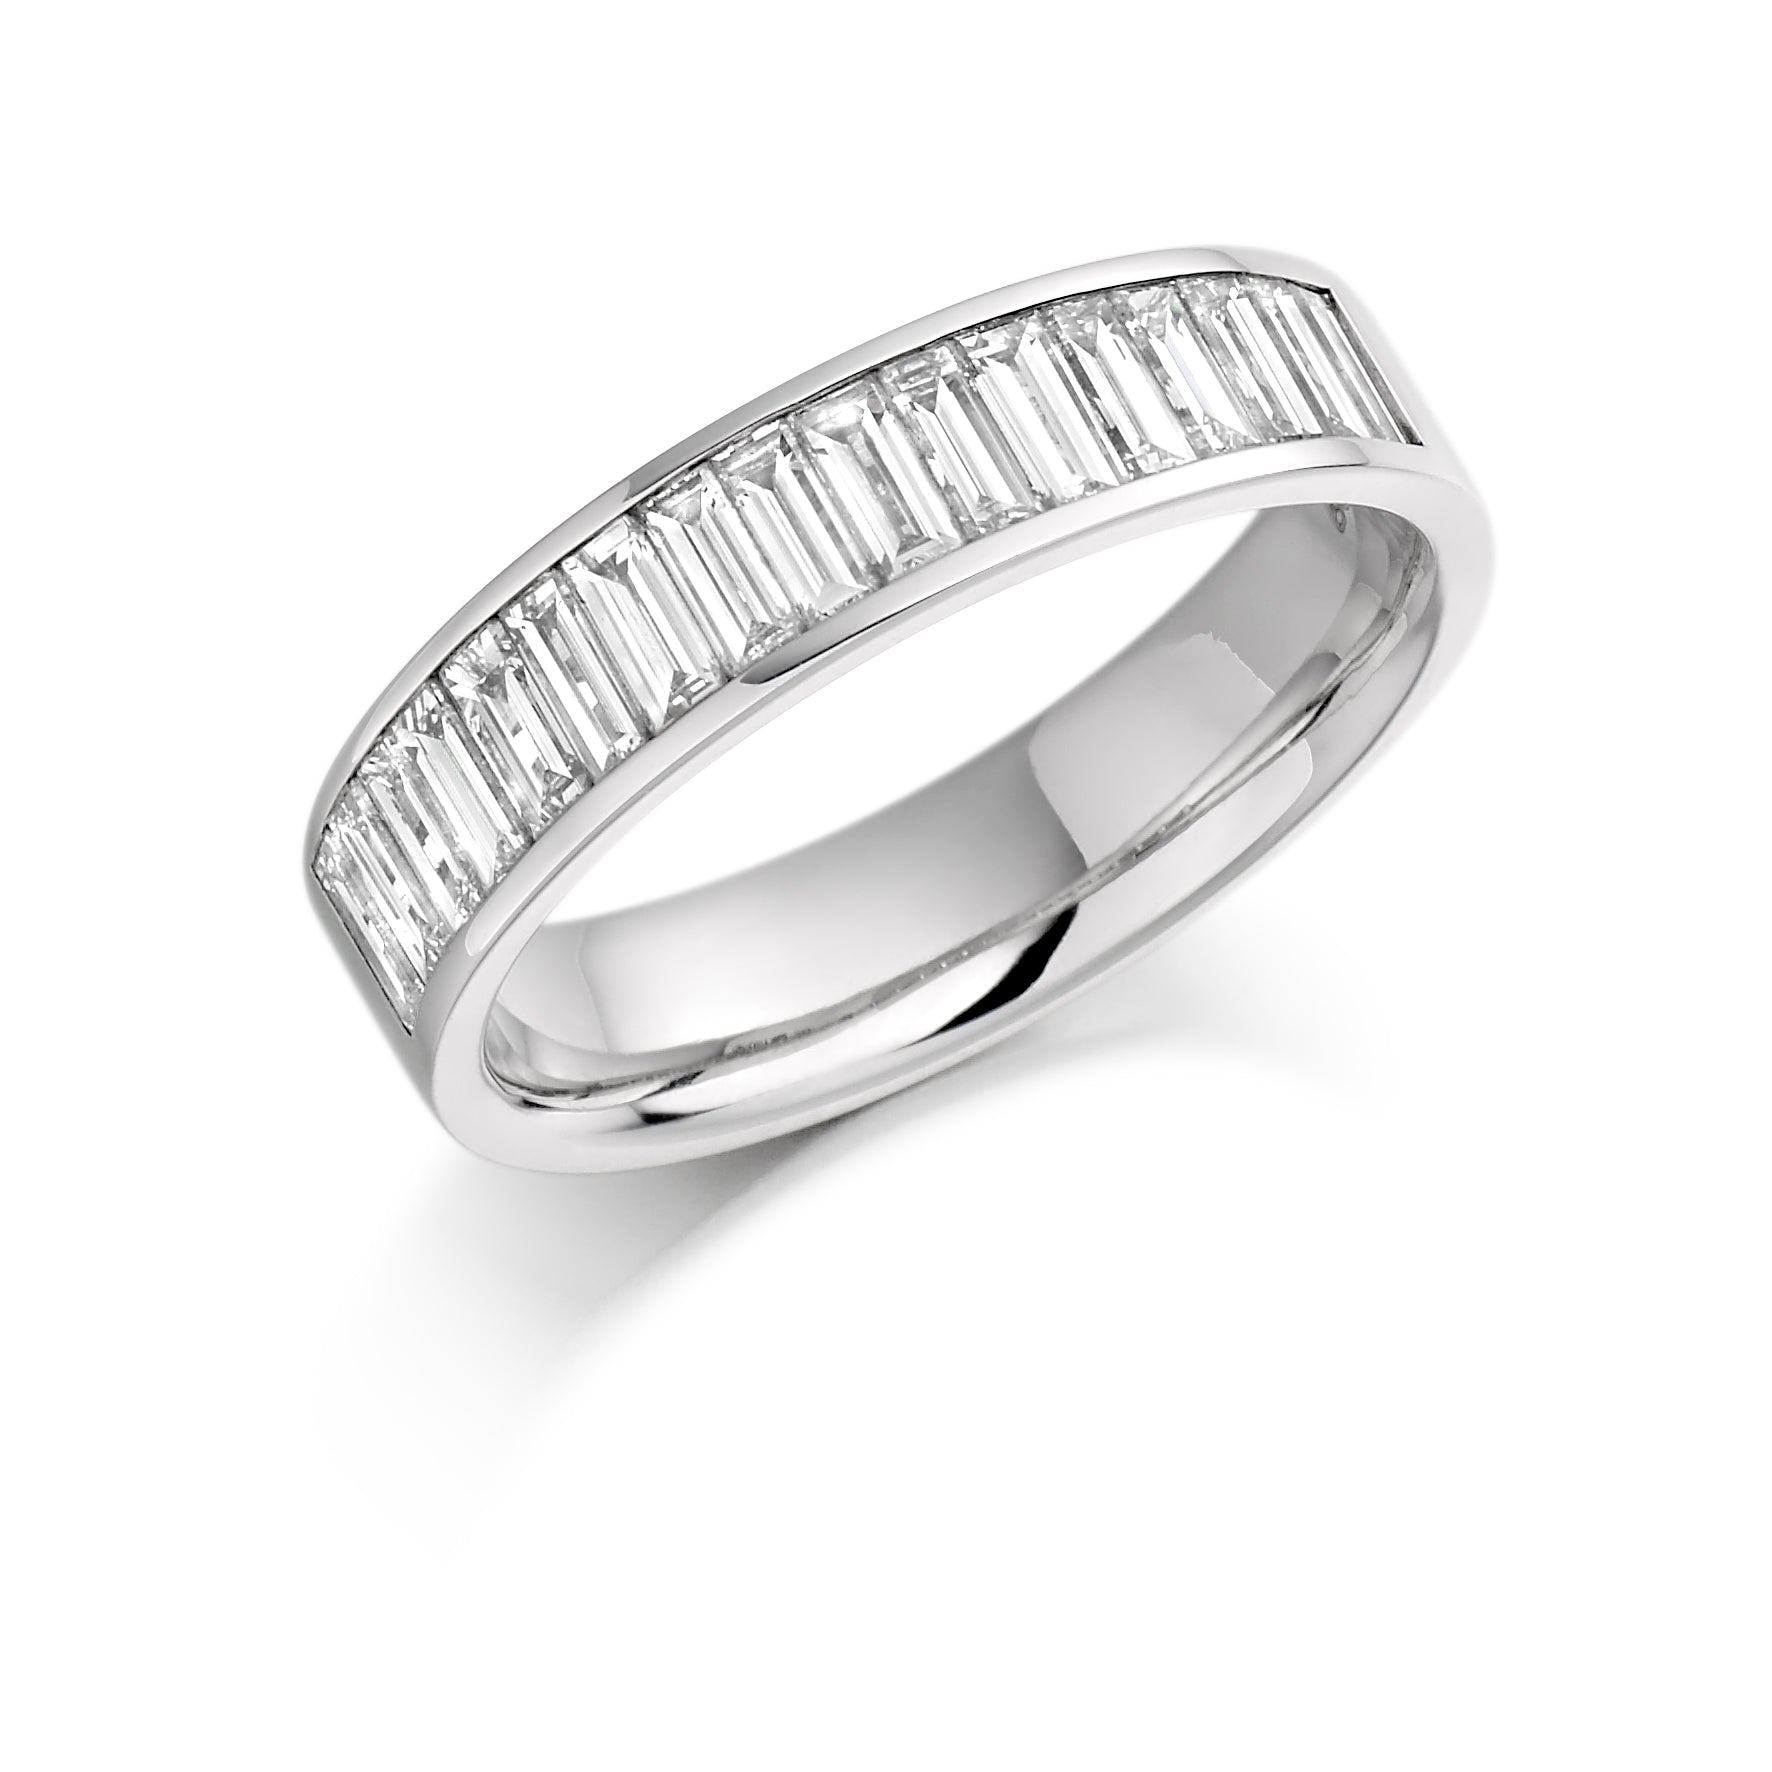 18ct White Gold 1ct Baguette Cut Diamond Channel Set Vintage Wedding Ring